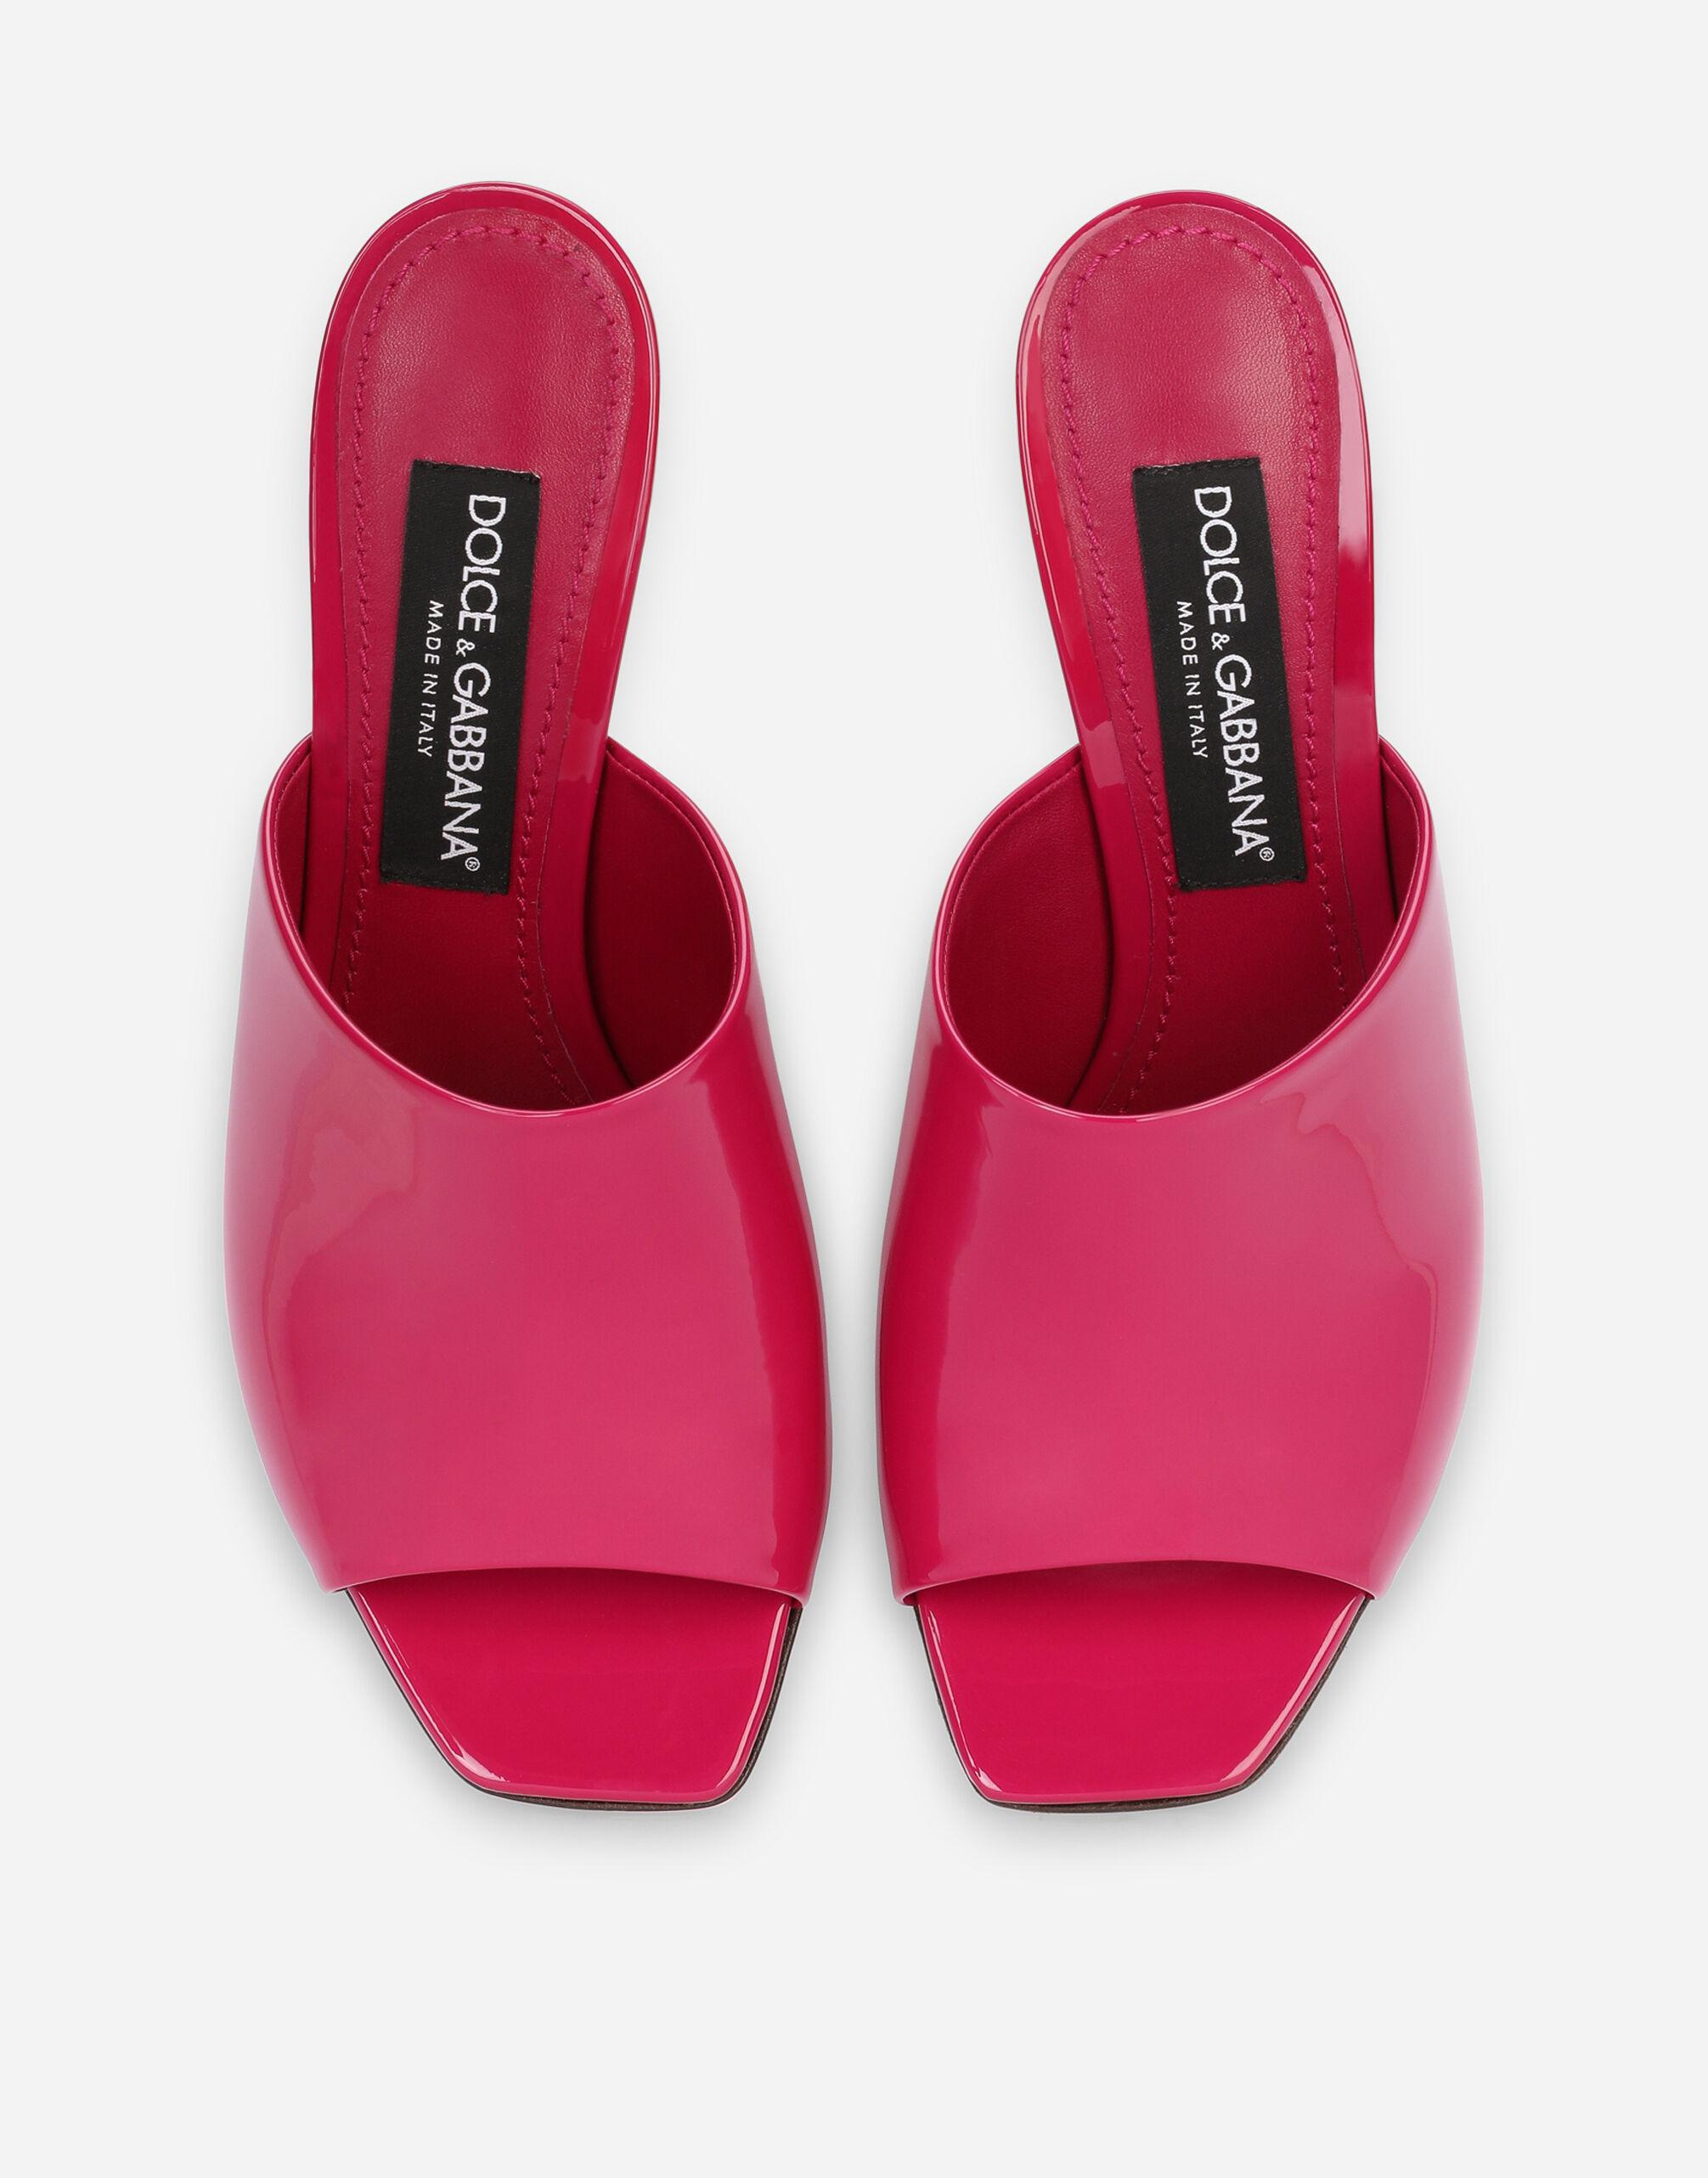 Patent leather mules with DG Pop heel 3